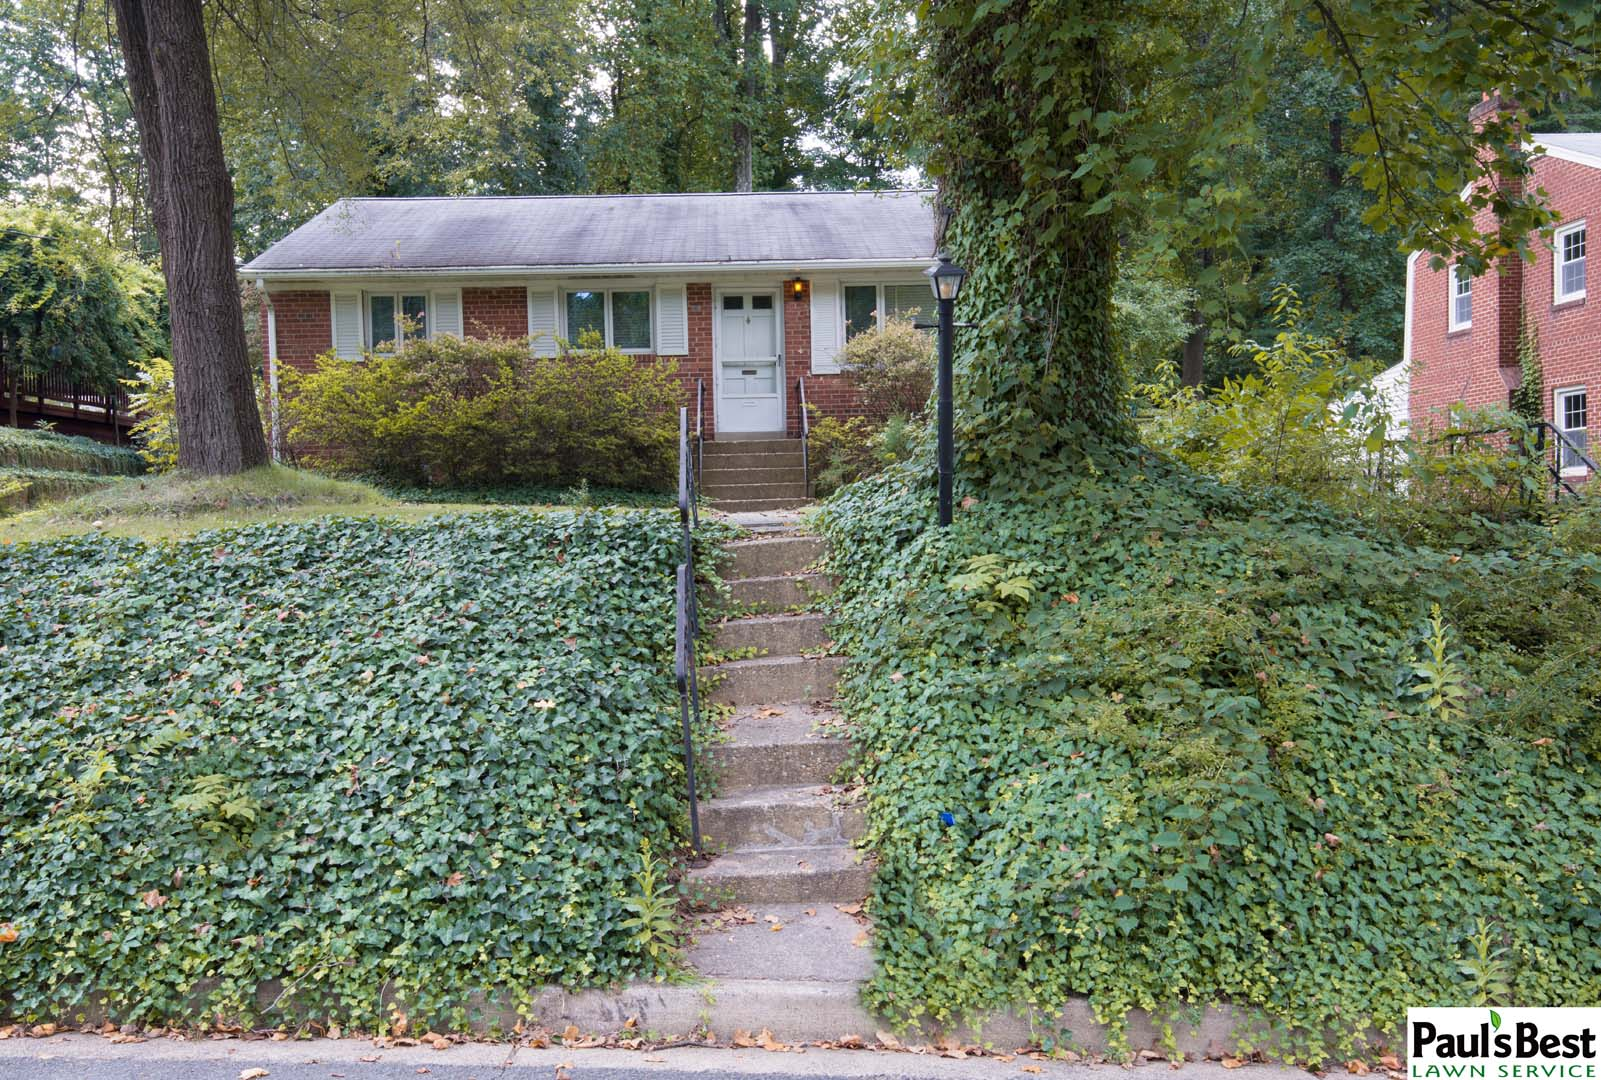 https://paulsbestlawn.com/pbls-img/portfolio/routine-property-maintenance/before-and-after/web-ready/large/BAPM1-d-After-General-Clean-up-Trimming-Ivy-and-Shrubs-in-Falls-Church-VA.jpg